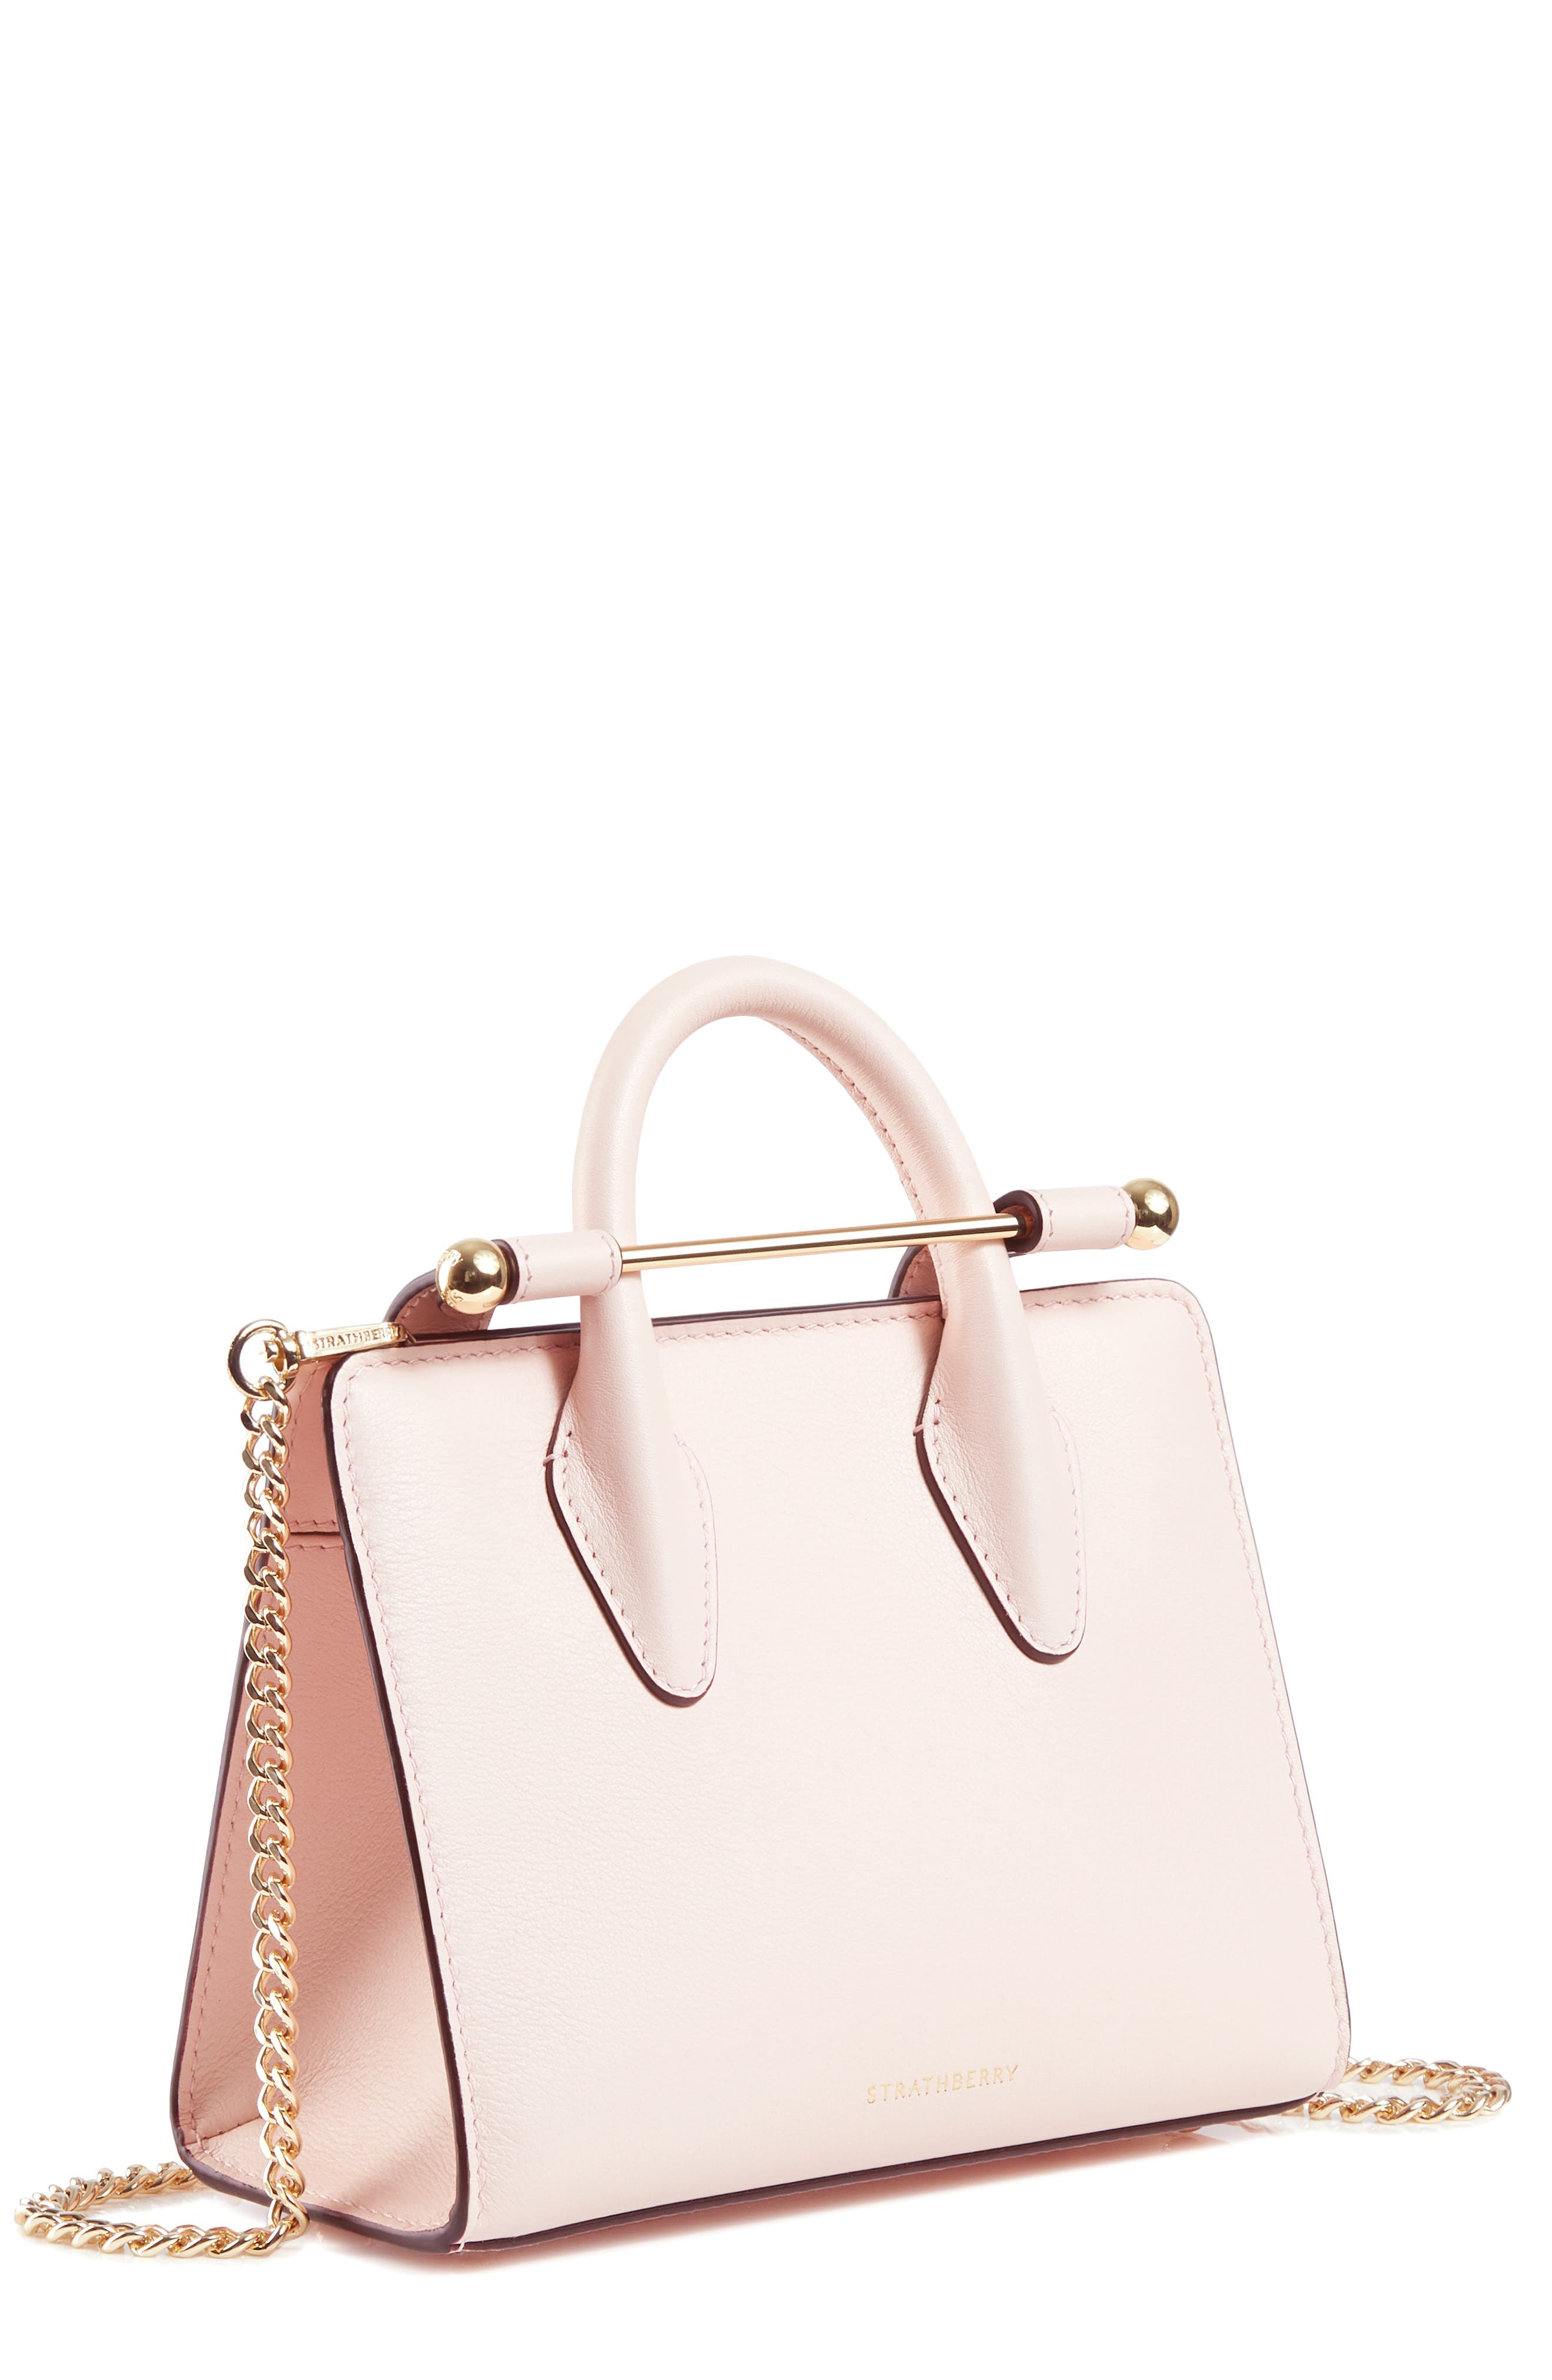 STRATHBERRY Nano Leather Tote, Main, color, BABY PINK